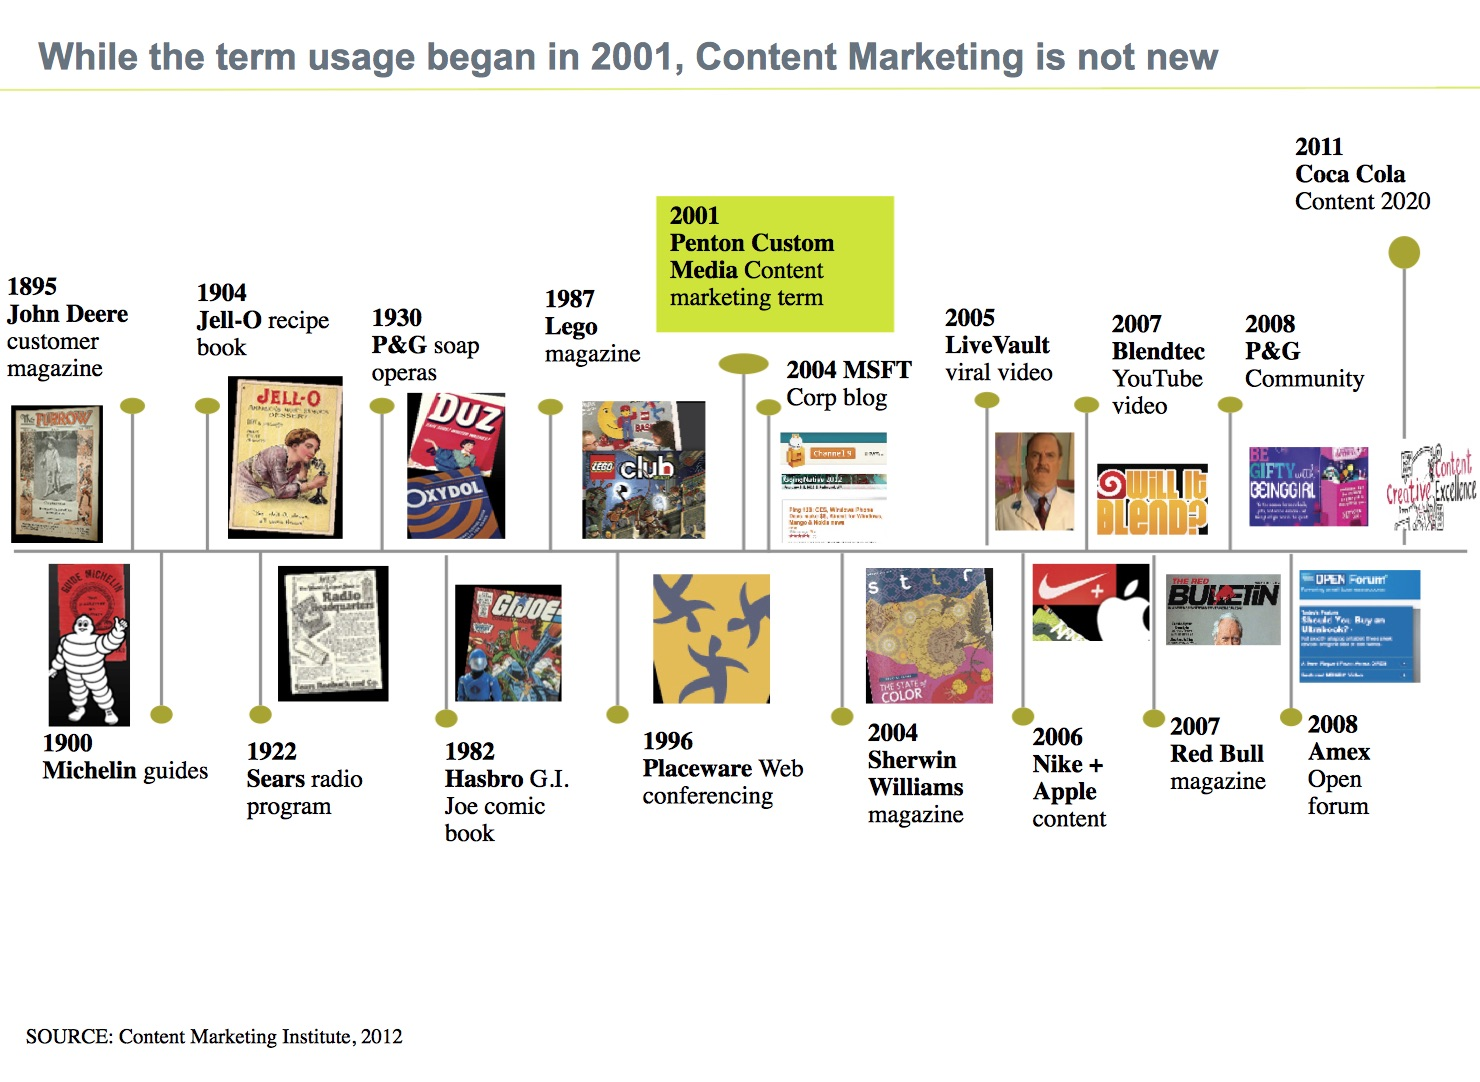 Content marketing is not new content is not a need